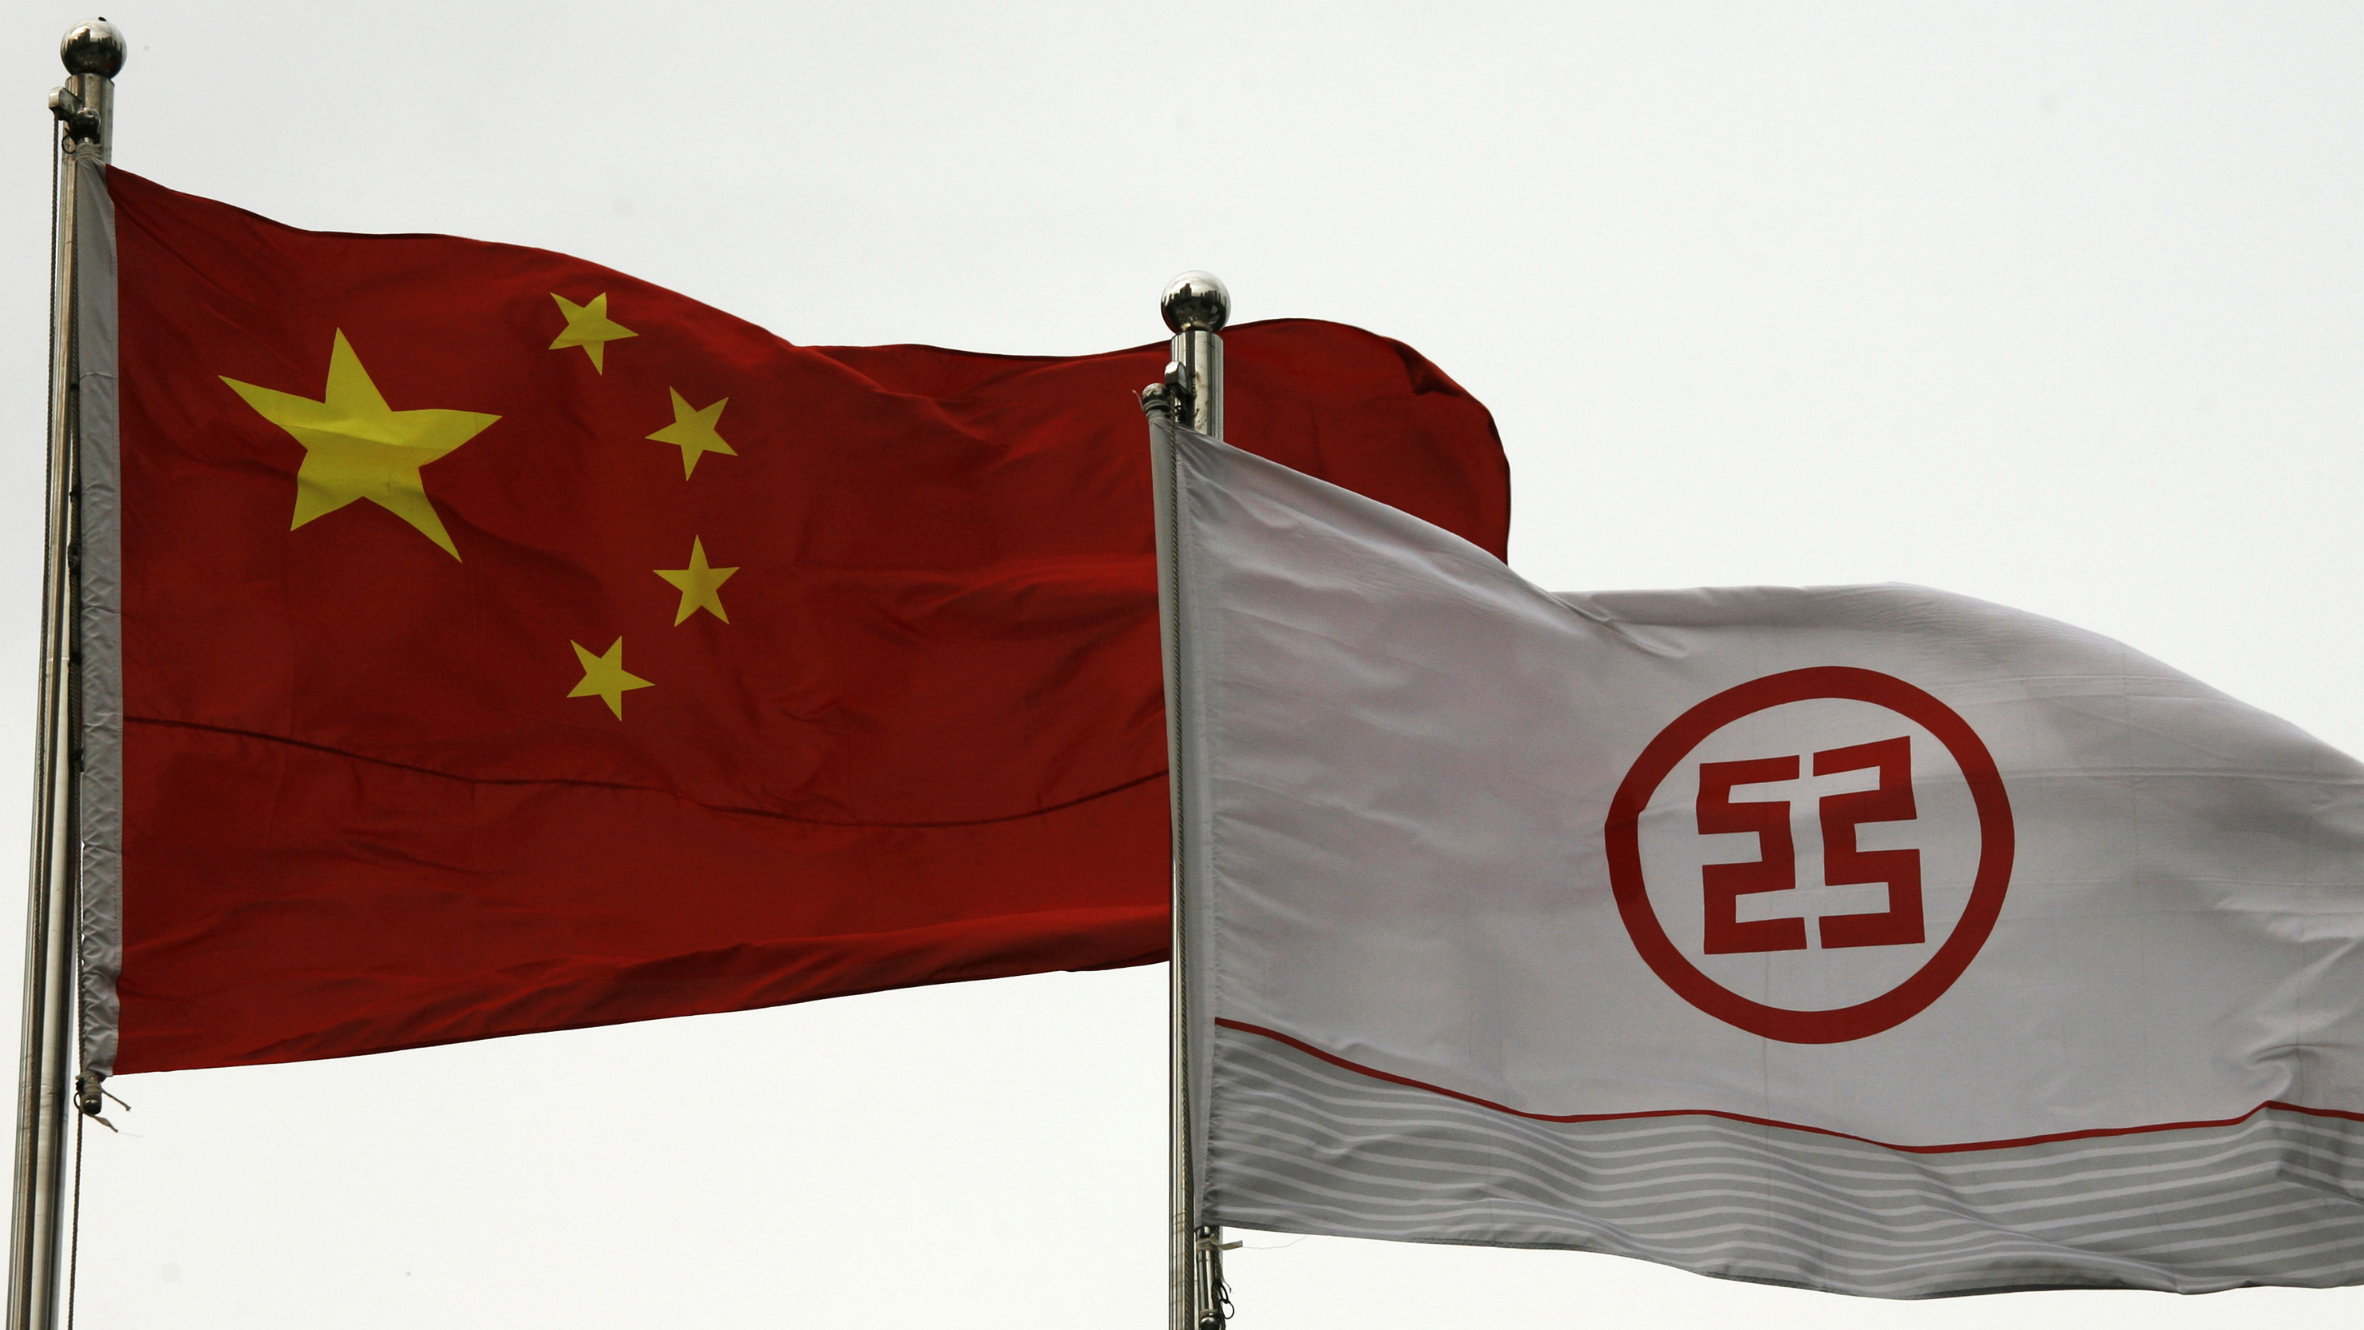 A flag printed with a logo of the Industrial & Commercial Bank of China (ICBC) flies along with a Chinese flag outside a branch in China's southern city of Shenzhen March 25, 2010. ICBC, the world's most valuable lender, reports its quarterly results on Thursday. REUTERS/Bobby Yip